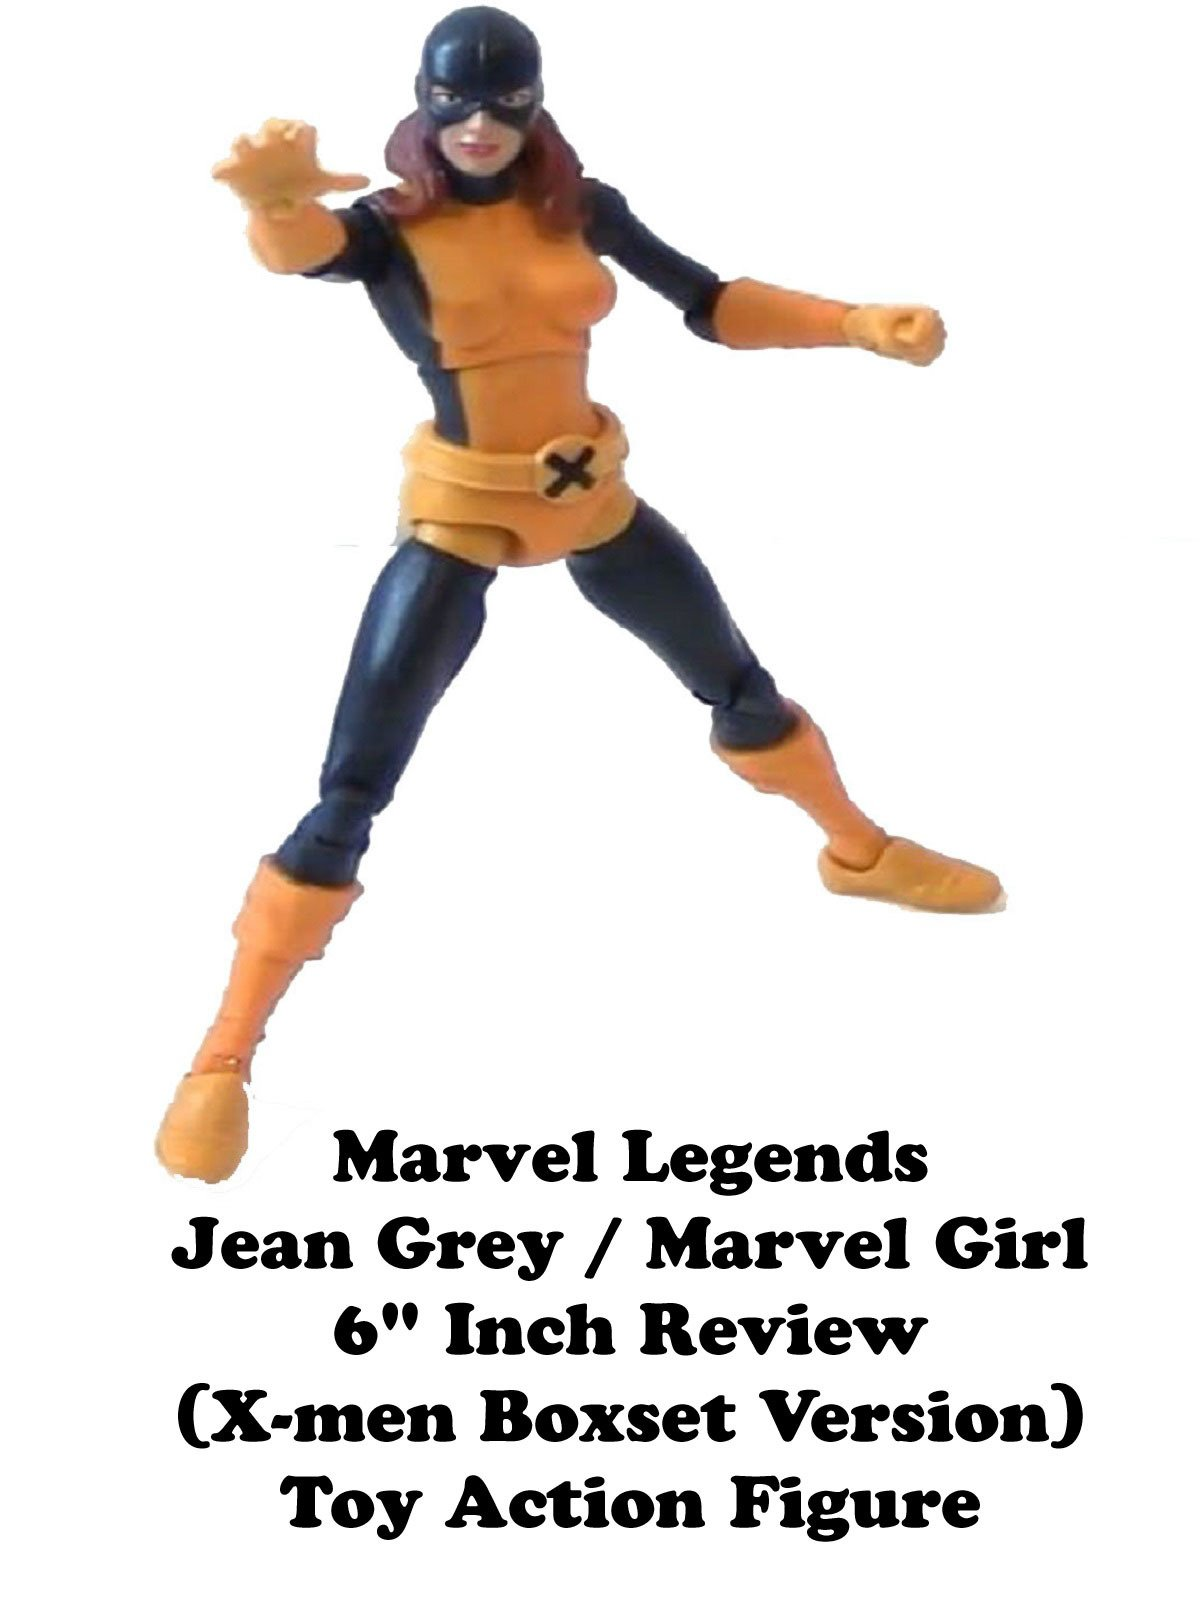 "Review: Marvel Legends Jean Grey / Marvel Girl 6"" Inch Review (X-men Boxset Version) Toy Action Figure"